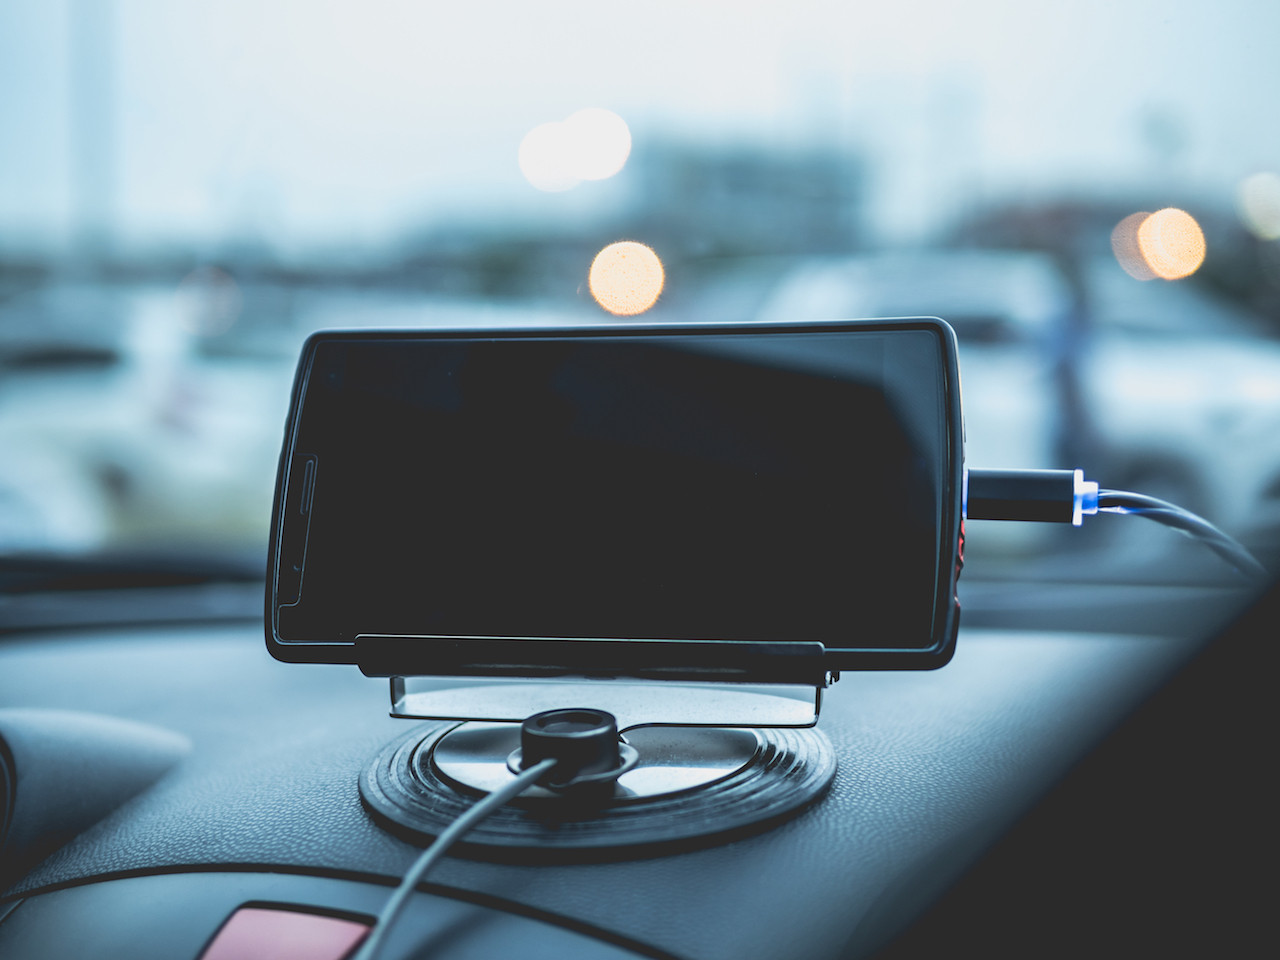 Three reasons to stop charging smartphones in cars